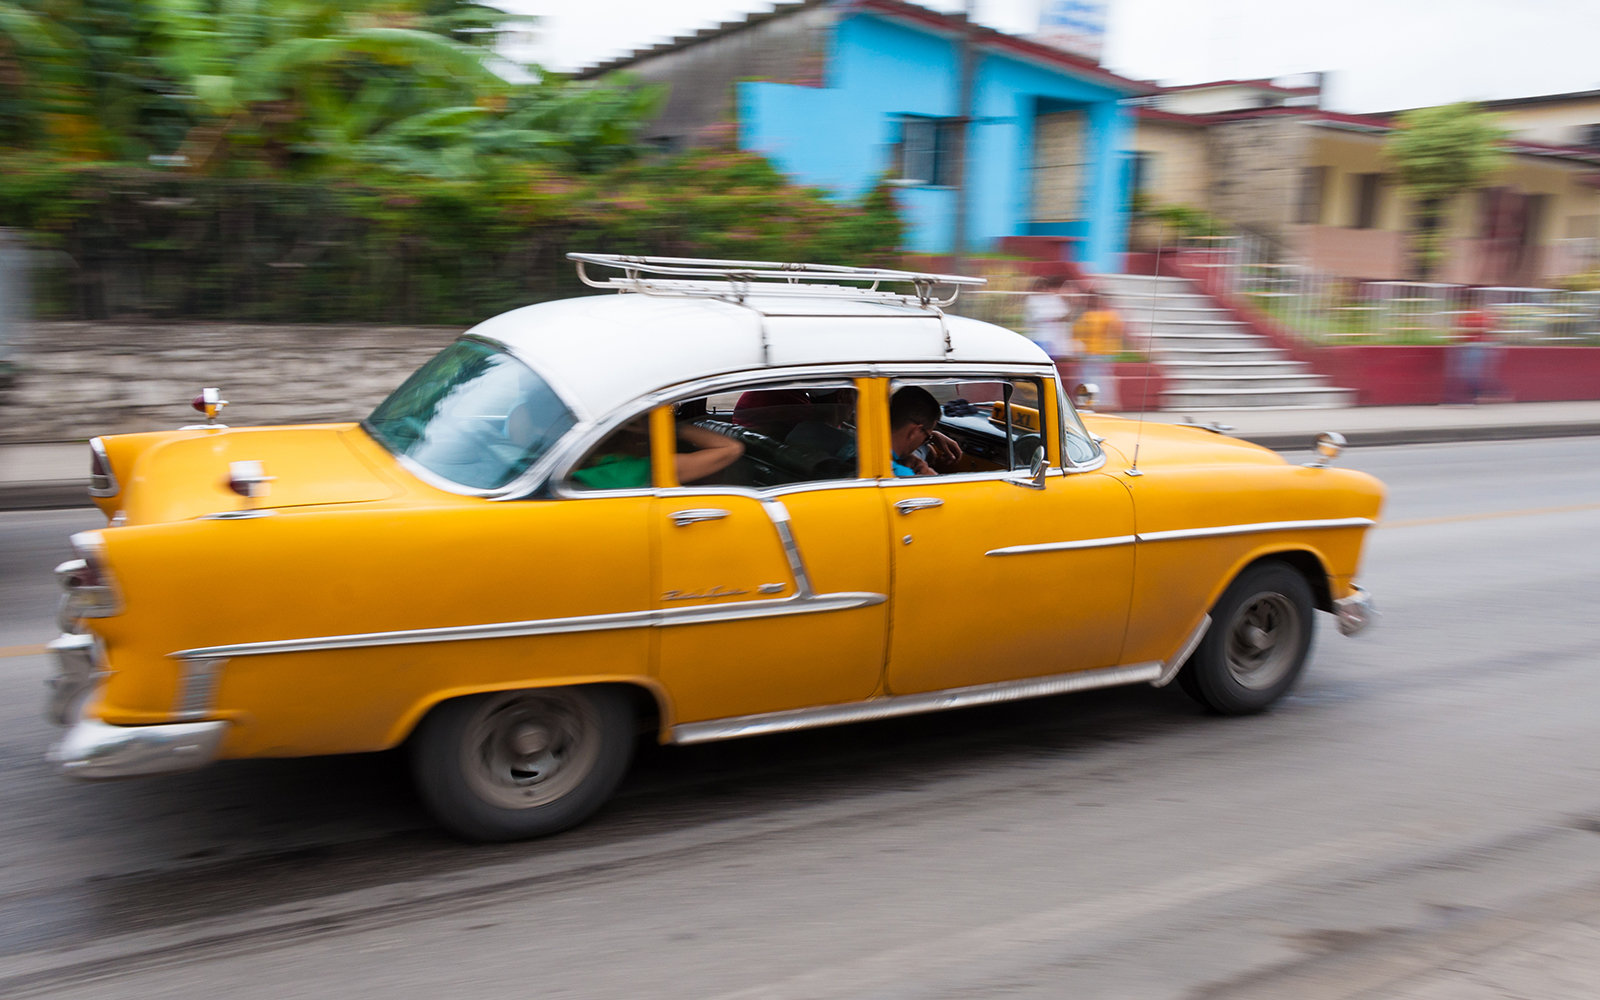 SANTA CLARA, VILLA CLARA, CUBA - 2012/04/28: An old fashioned yellow taxi on the street of Cuba. Cuba still has many American cars of the 1950s running on the roads. (Photo by Roberto Machado Noa/LightRocket via Getty Images)